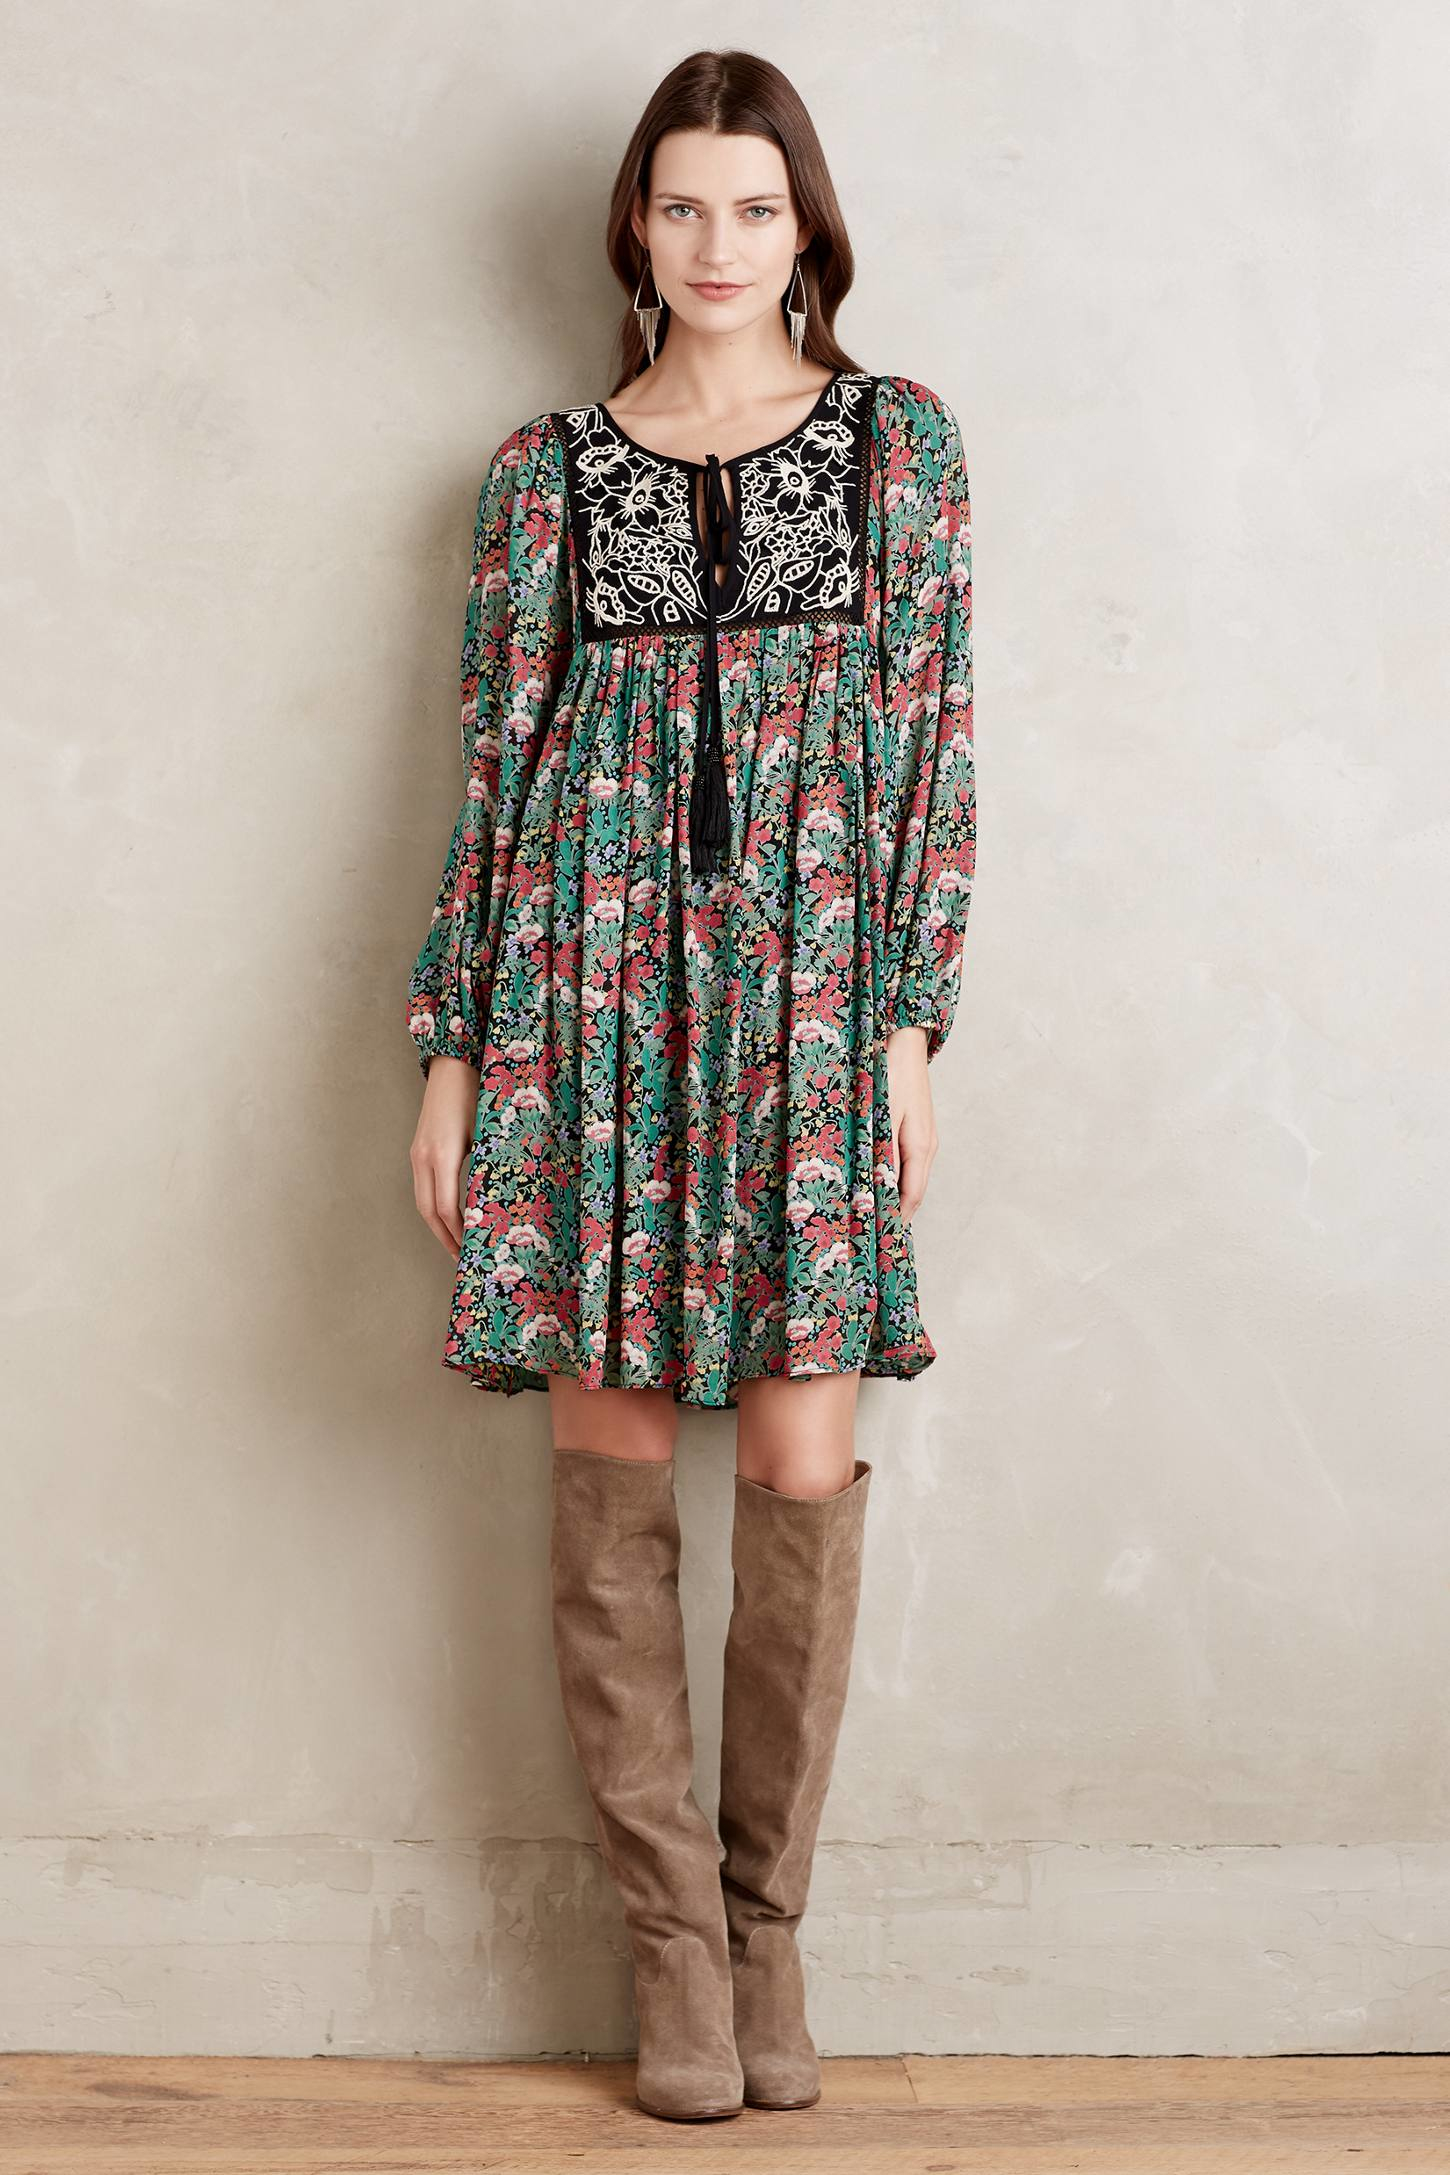 Shop our Collection of Women's Peasant Dresses at 10mins.ml for the Latest Designer Brands & Styles. FREE SHIPPING AVAILABLE!